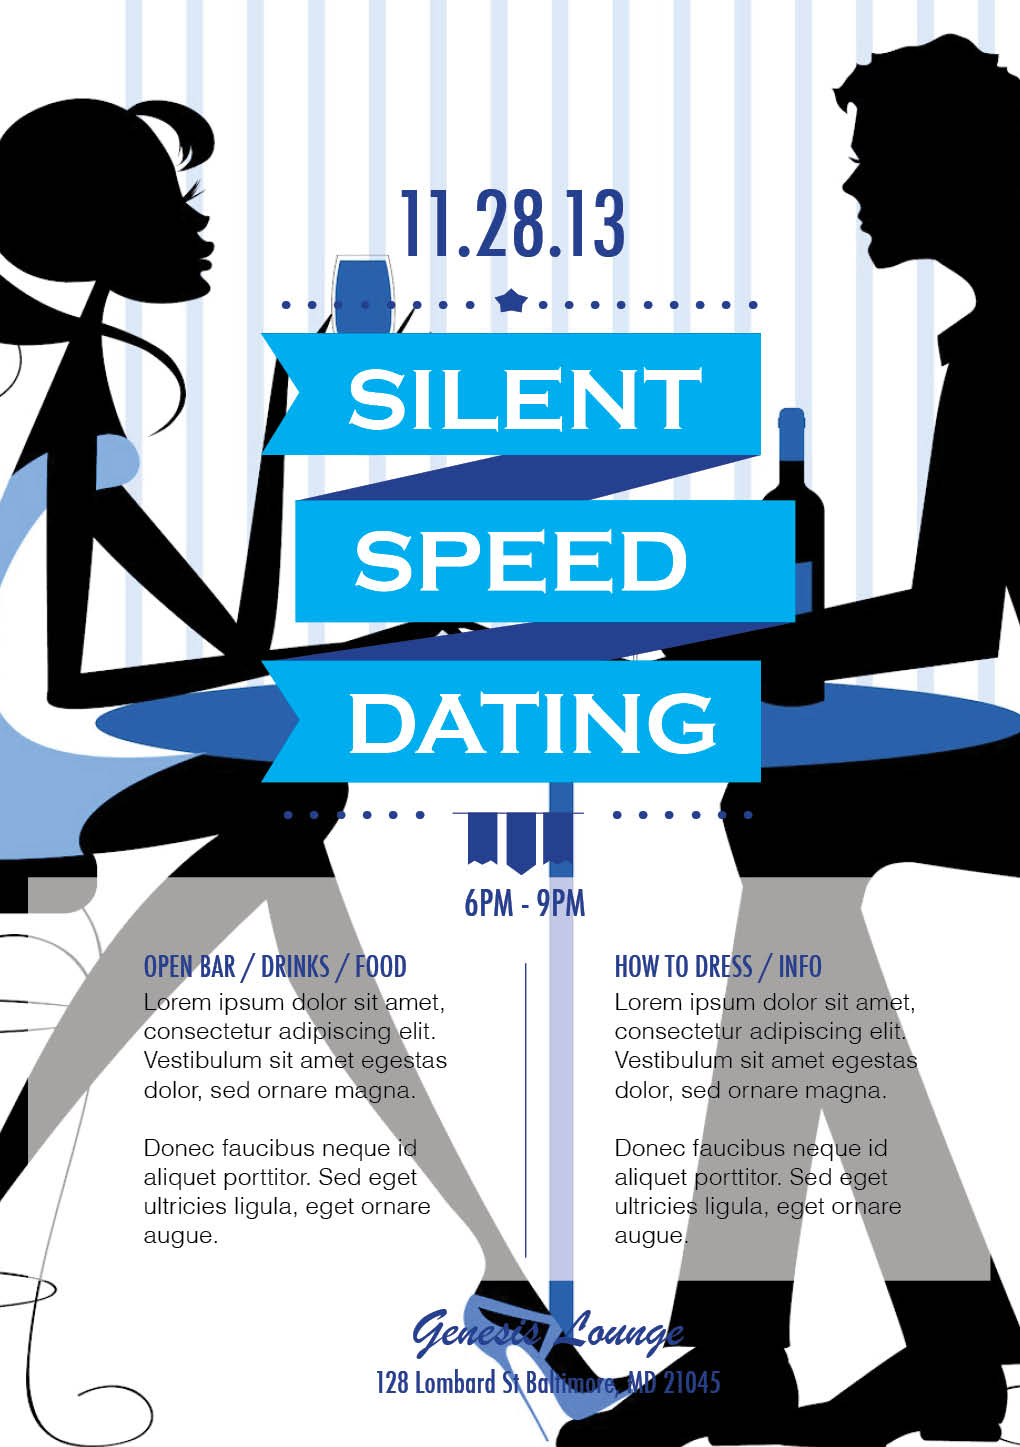 Speed dating events in my area